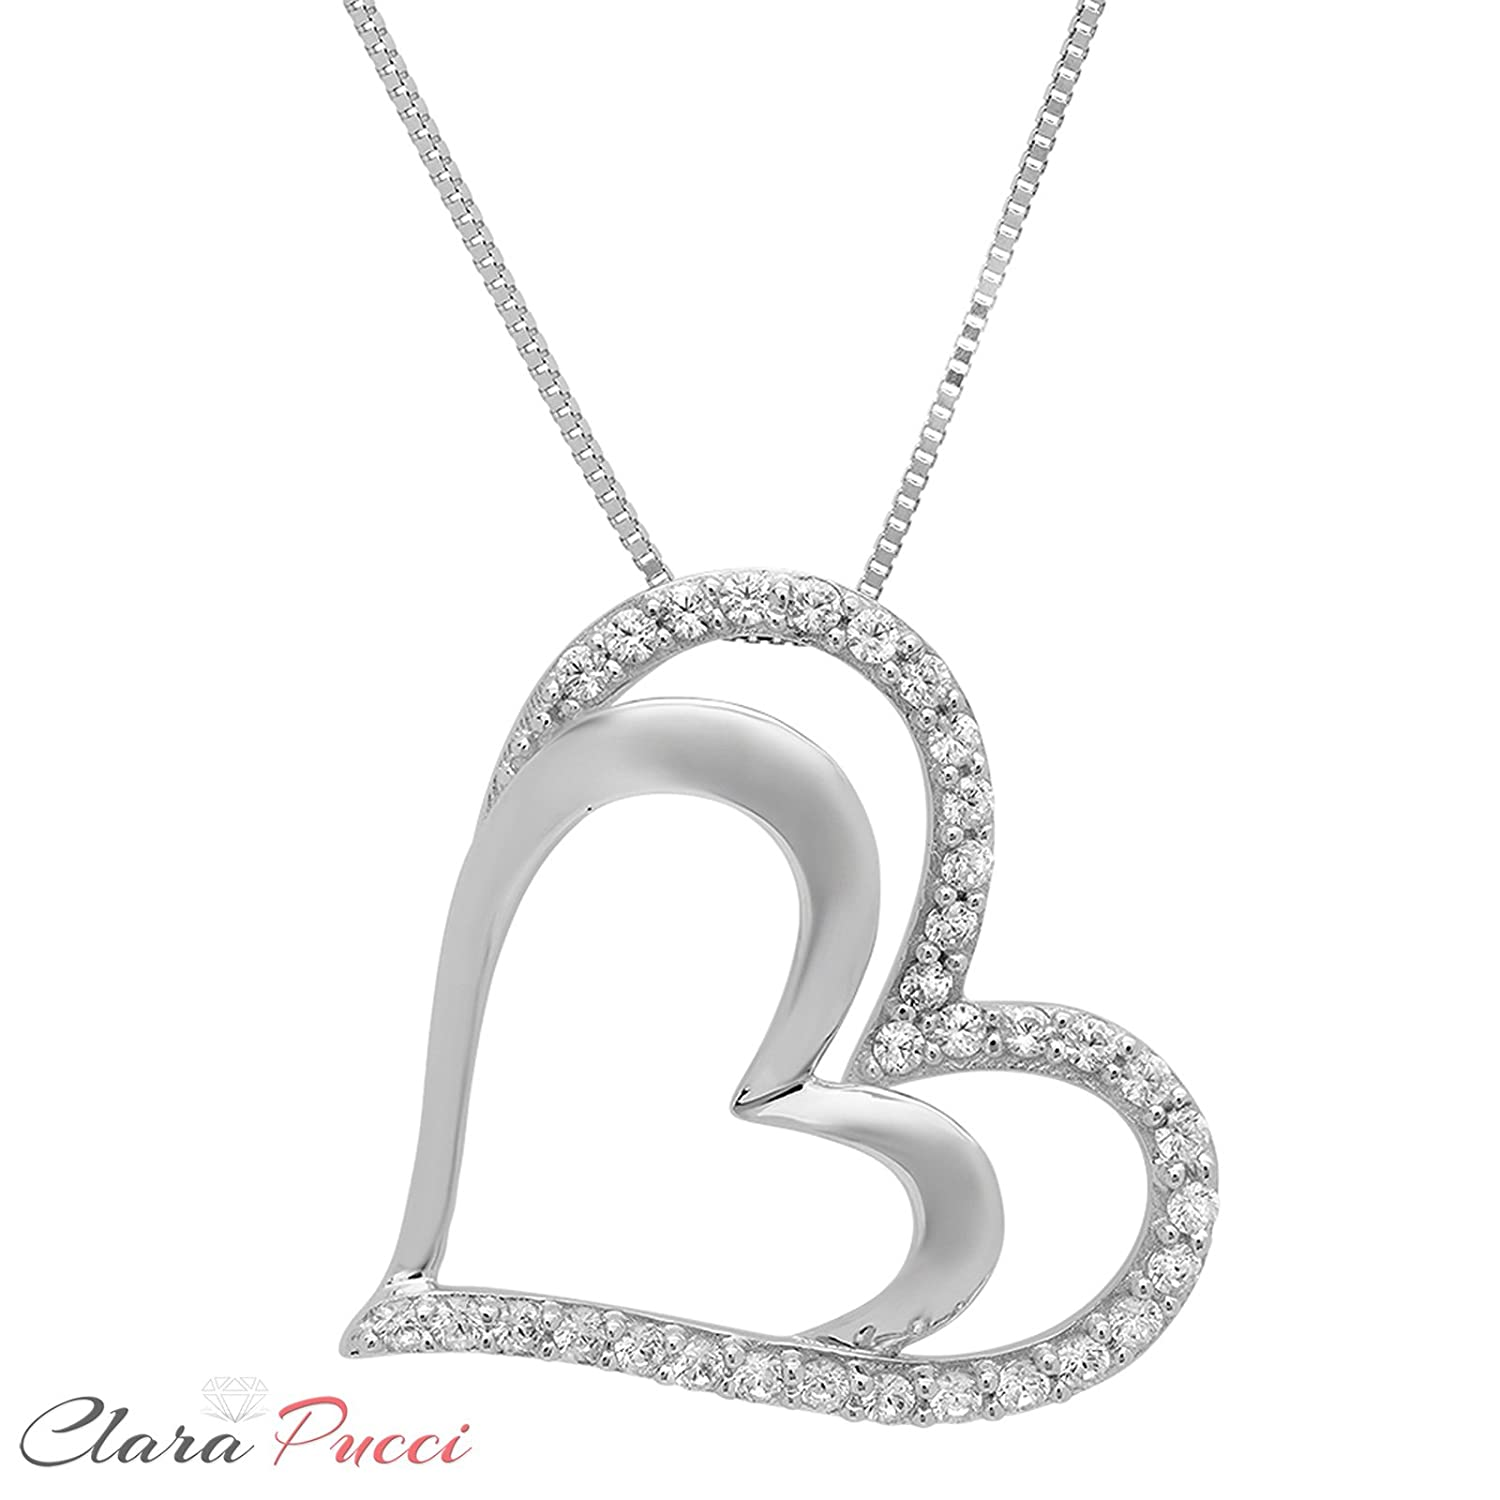 Clara Pucci 0.15 CT Heart Brilliant Round Cut CZ 14K White Gold Pendant Box Necklace 16 Chain